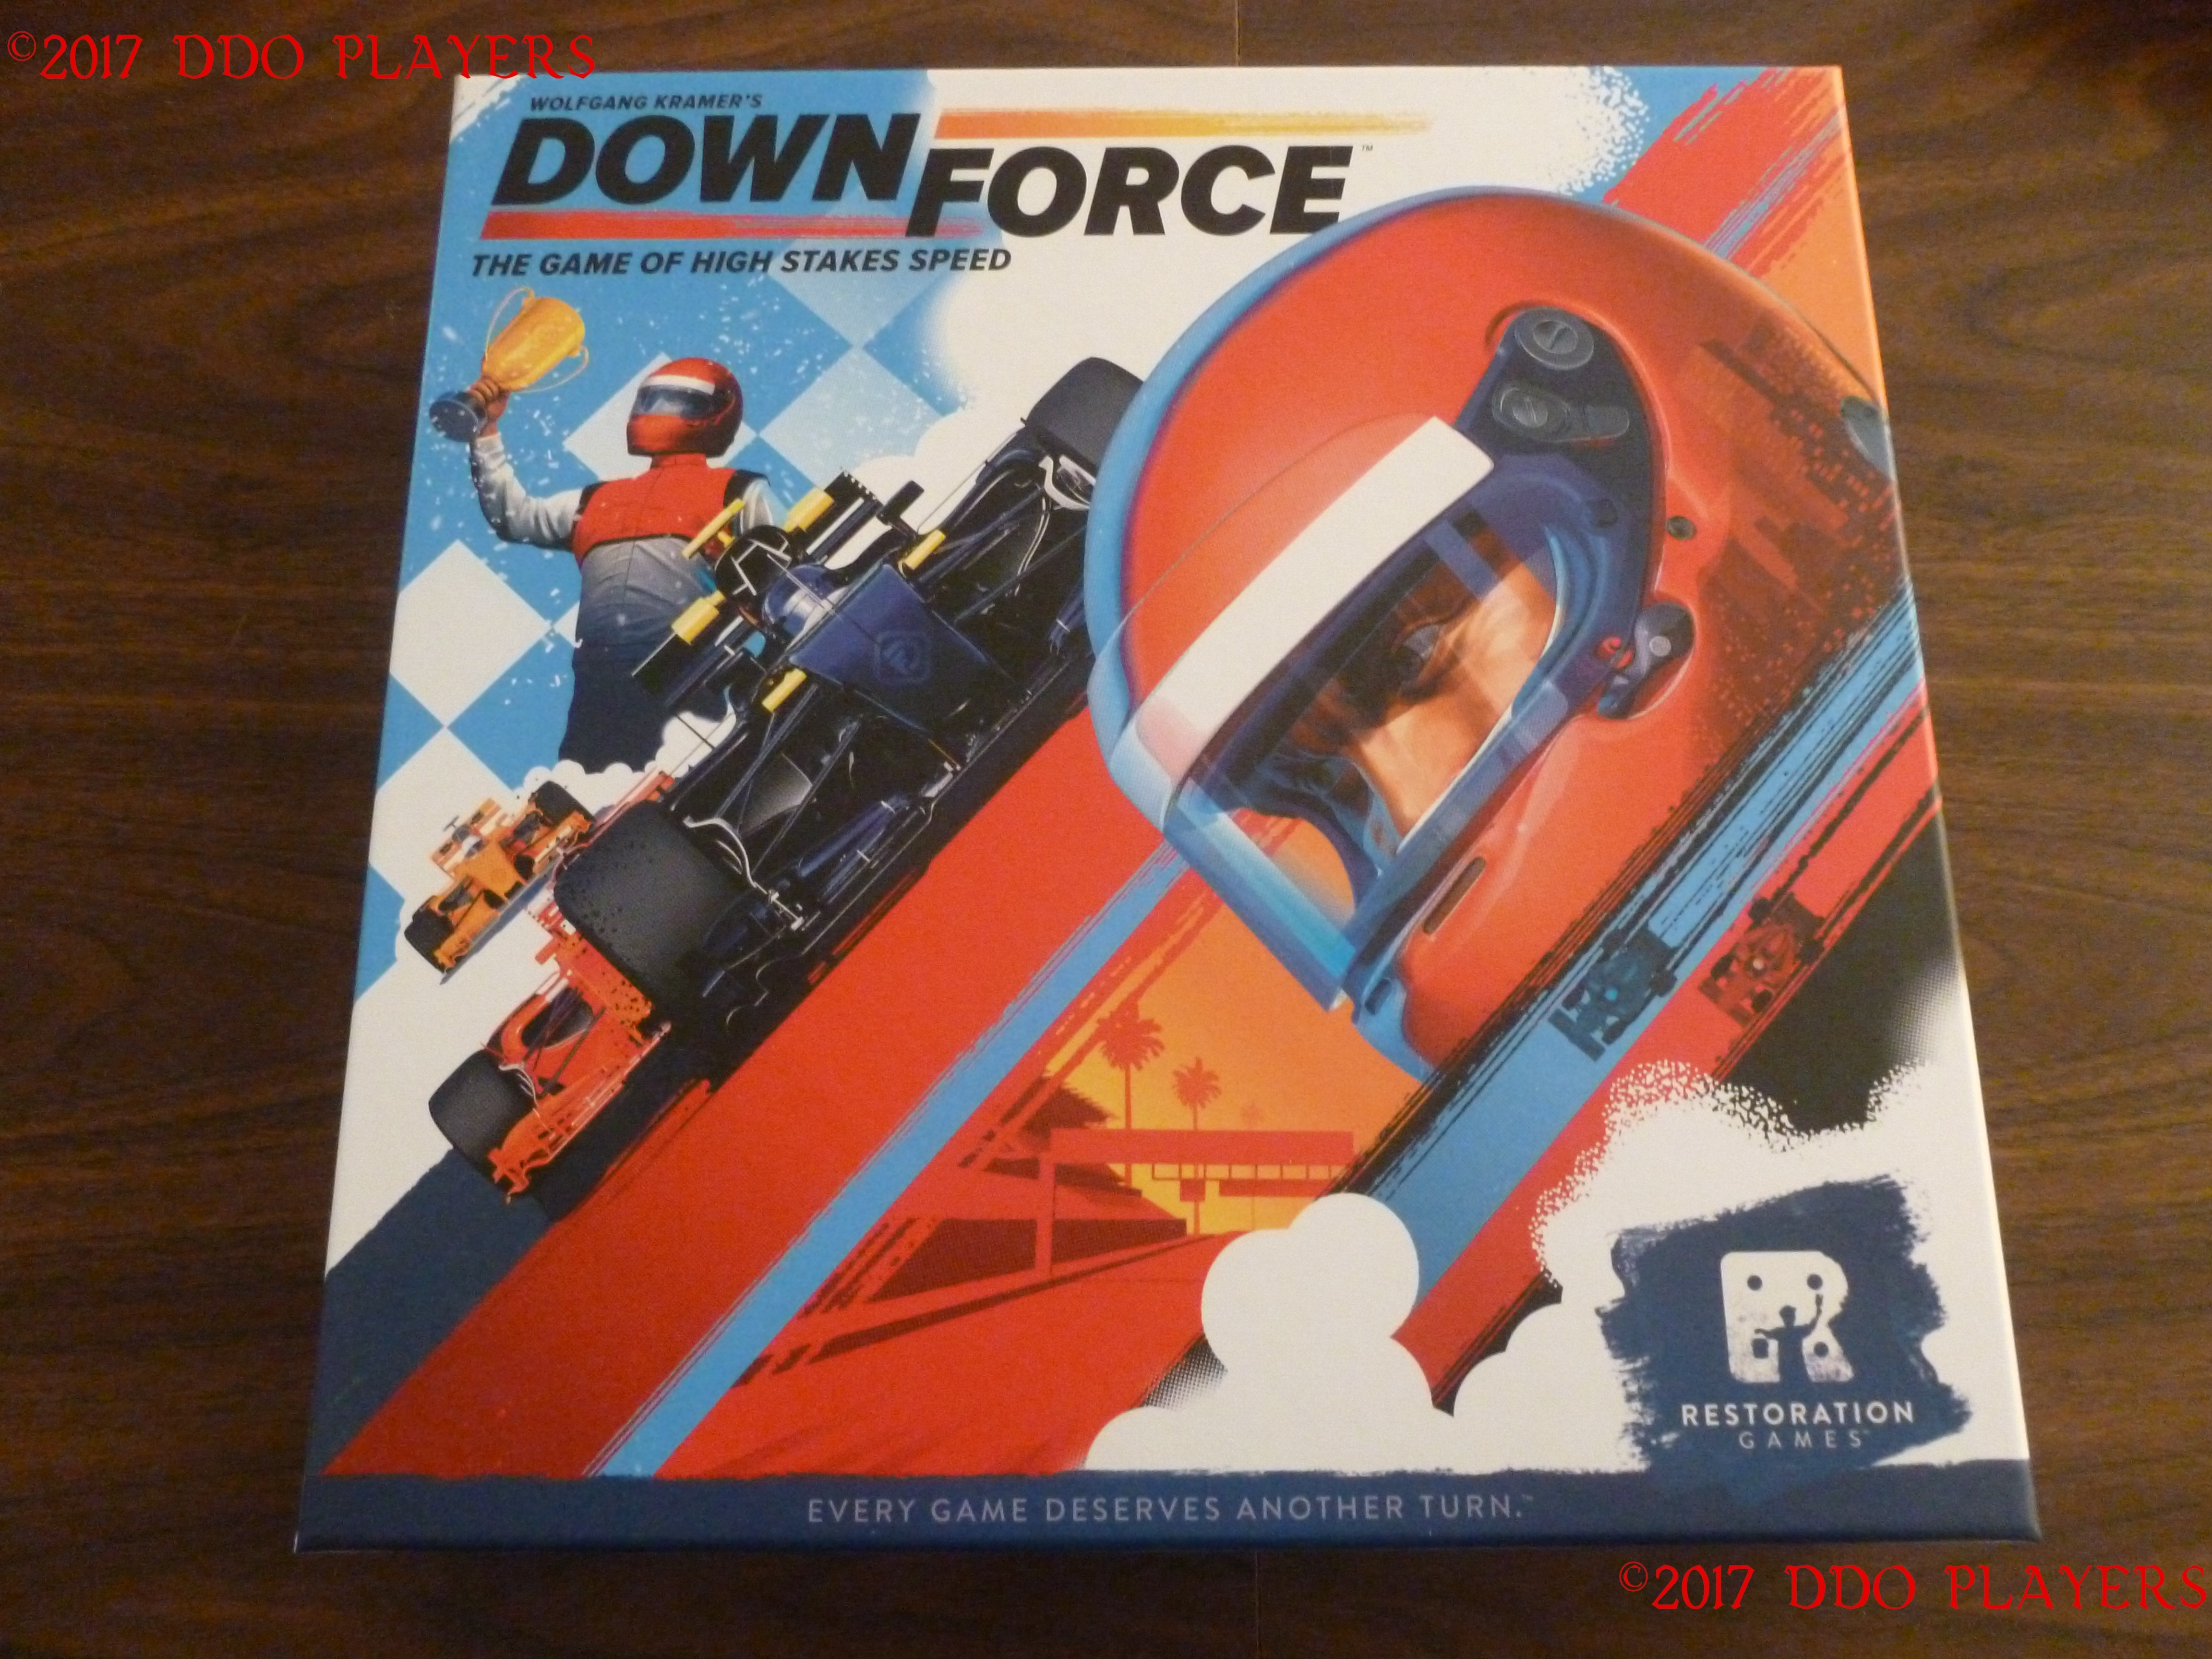 Downforce – Review | DDO Players